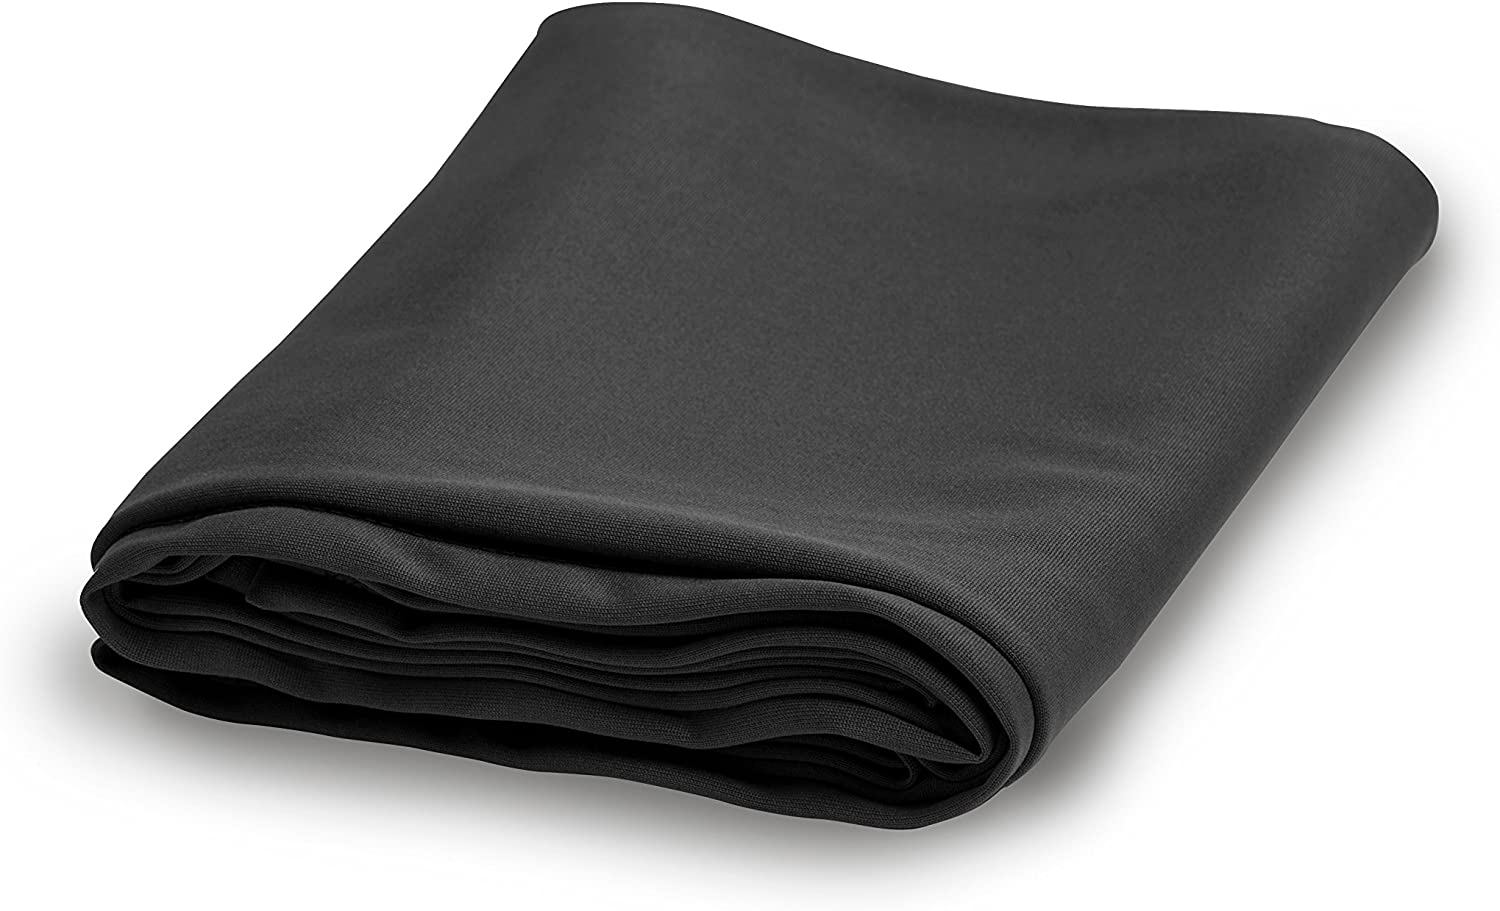 Granted Ent Towel Dry Quickly Antibacterial sports and travel Microfiber Sports Towel Ideal for camping Large with dimensions 80cmx160cm.